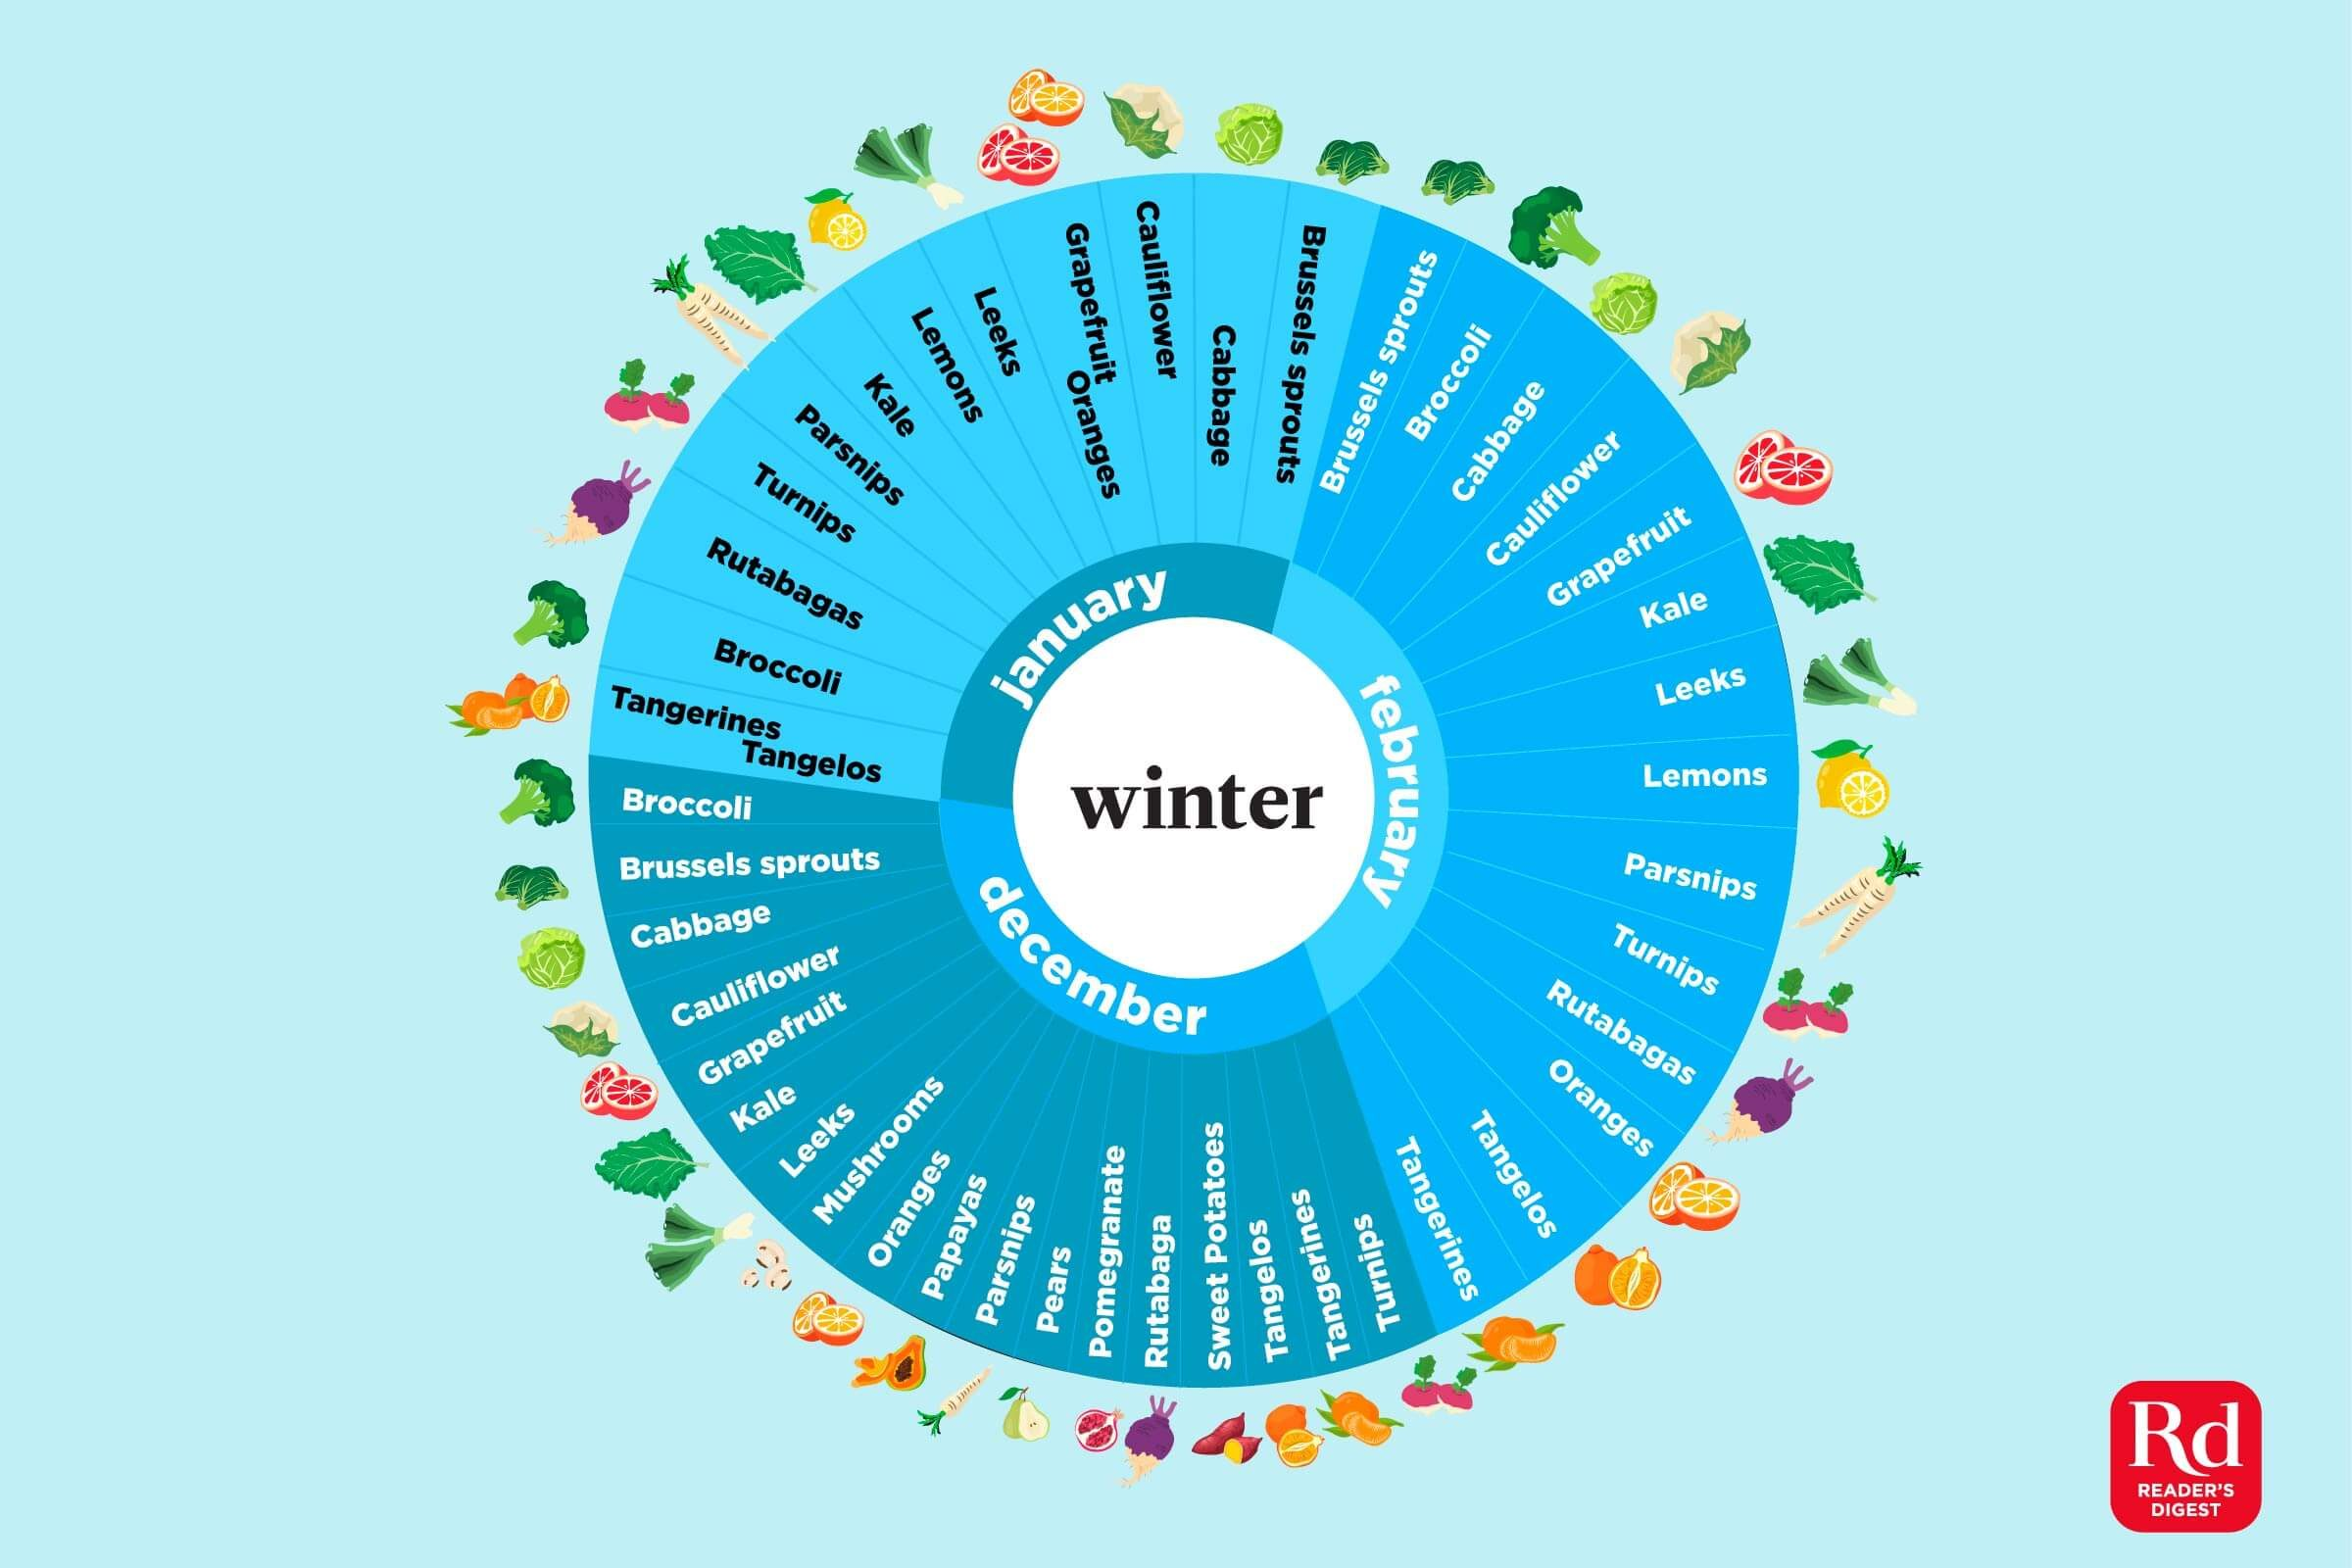 These Infographics Show the Fruits and Vegetables in Season Every Month of the Year